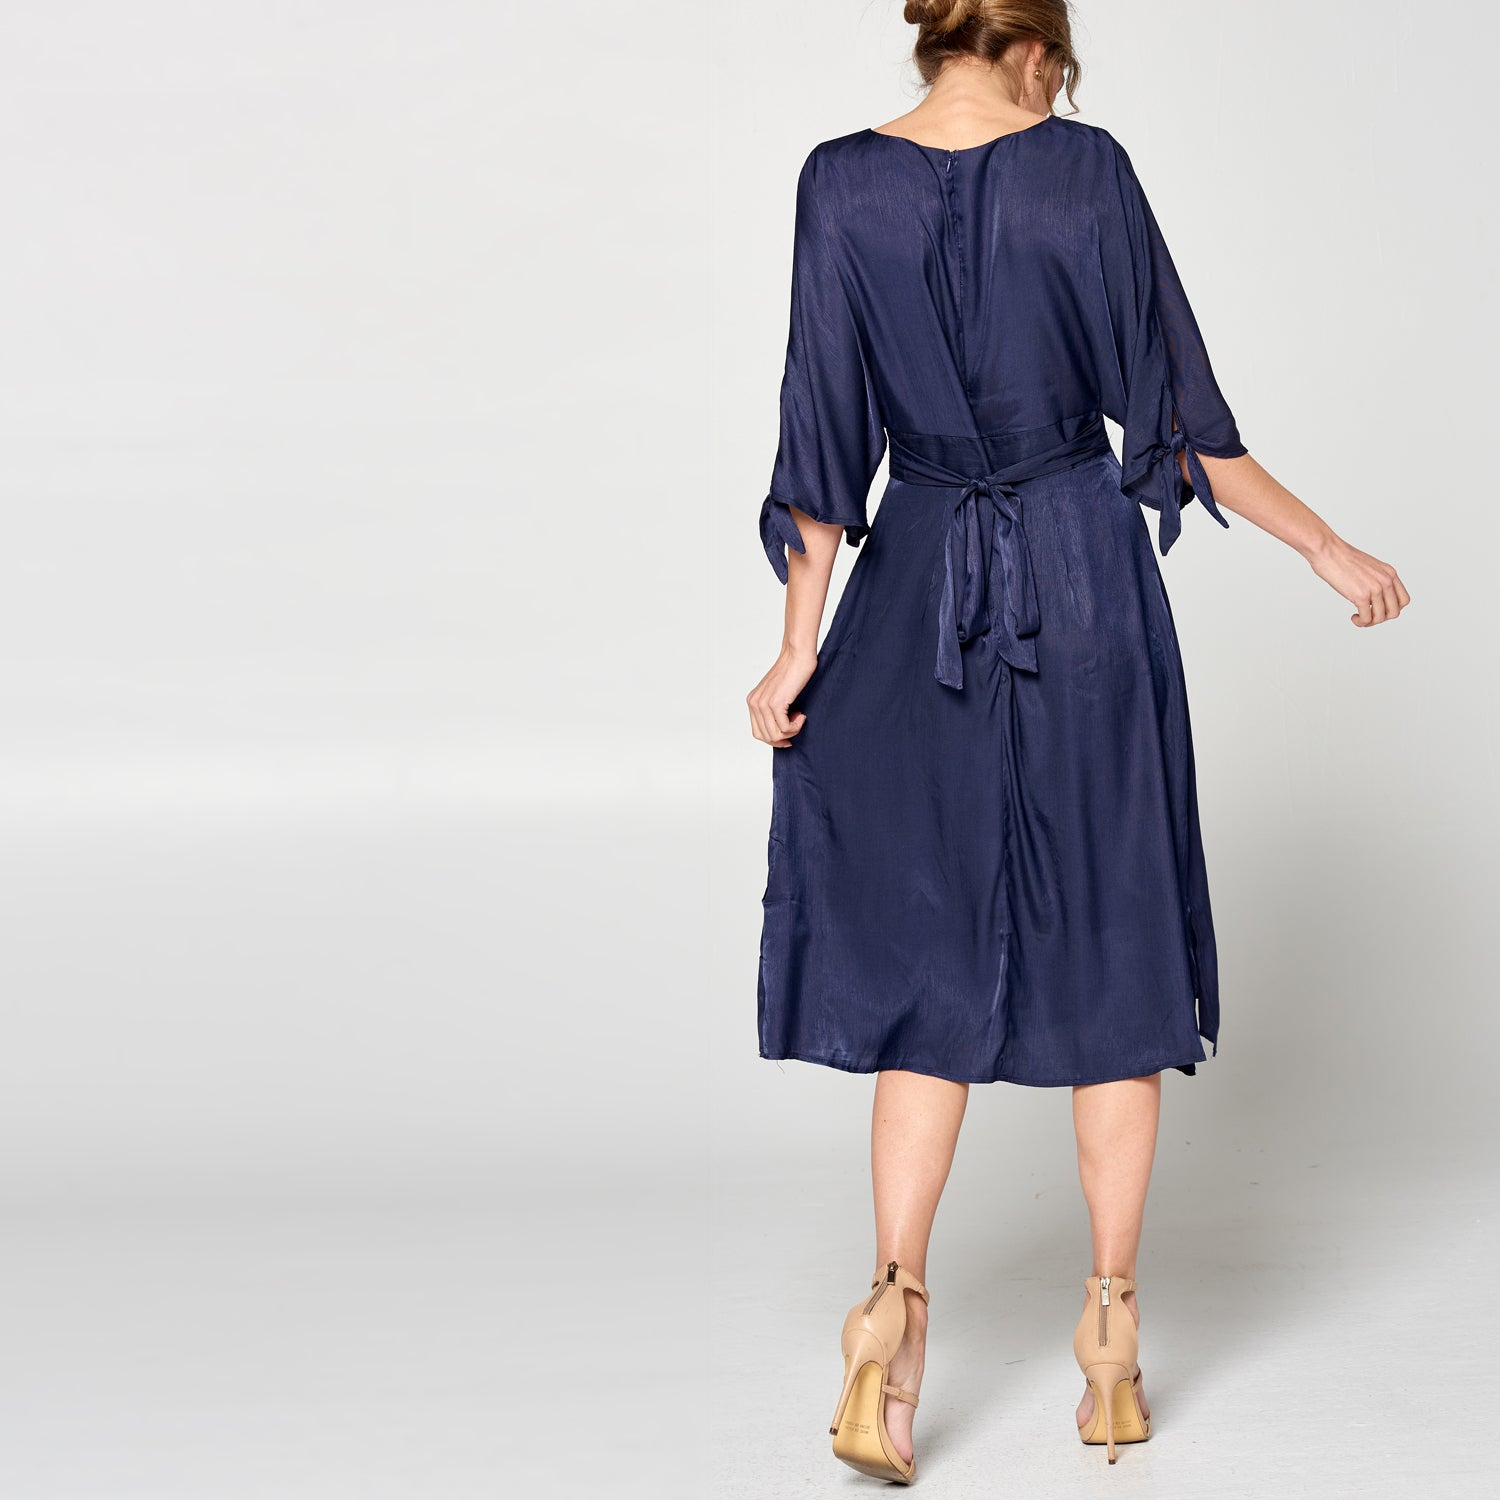 Navy Satin Midi Dress